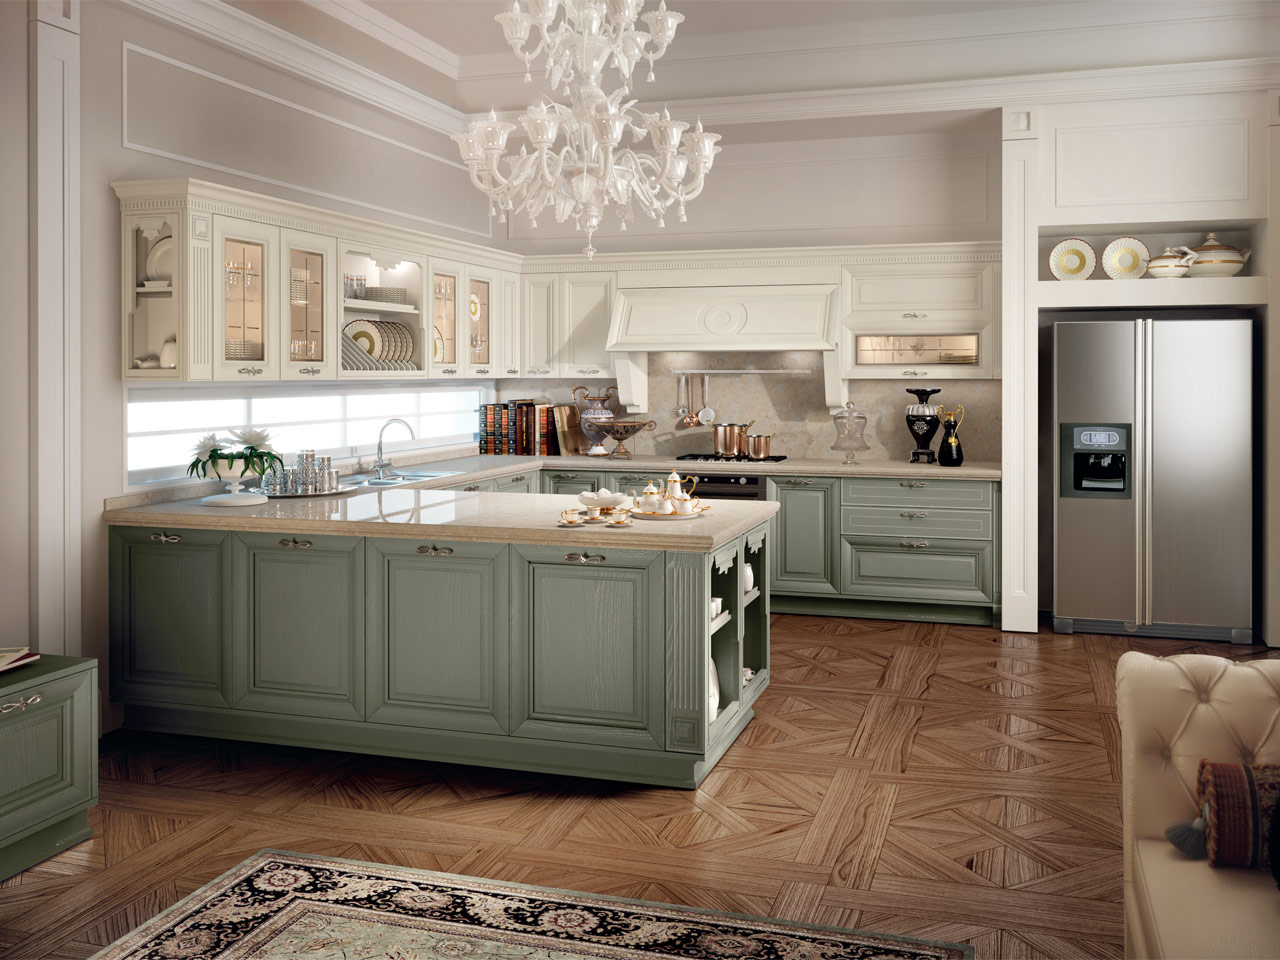 CUCINA DECAPATA COLLEZIONE PANTHEON BY CUCINE LUBE